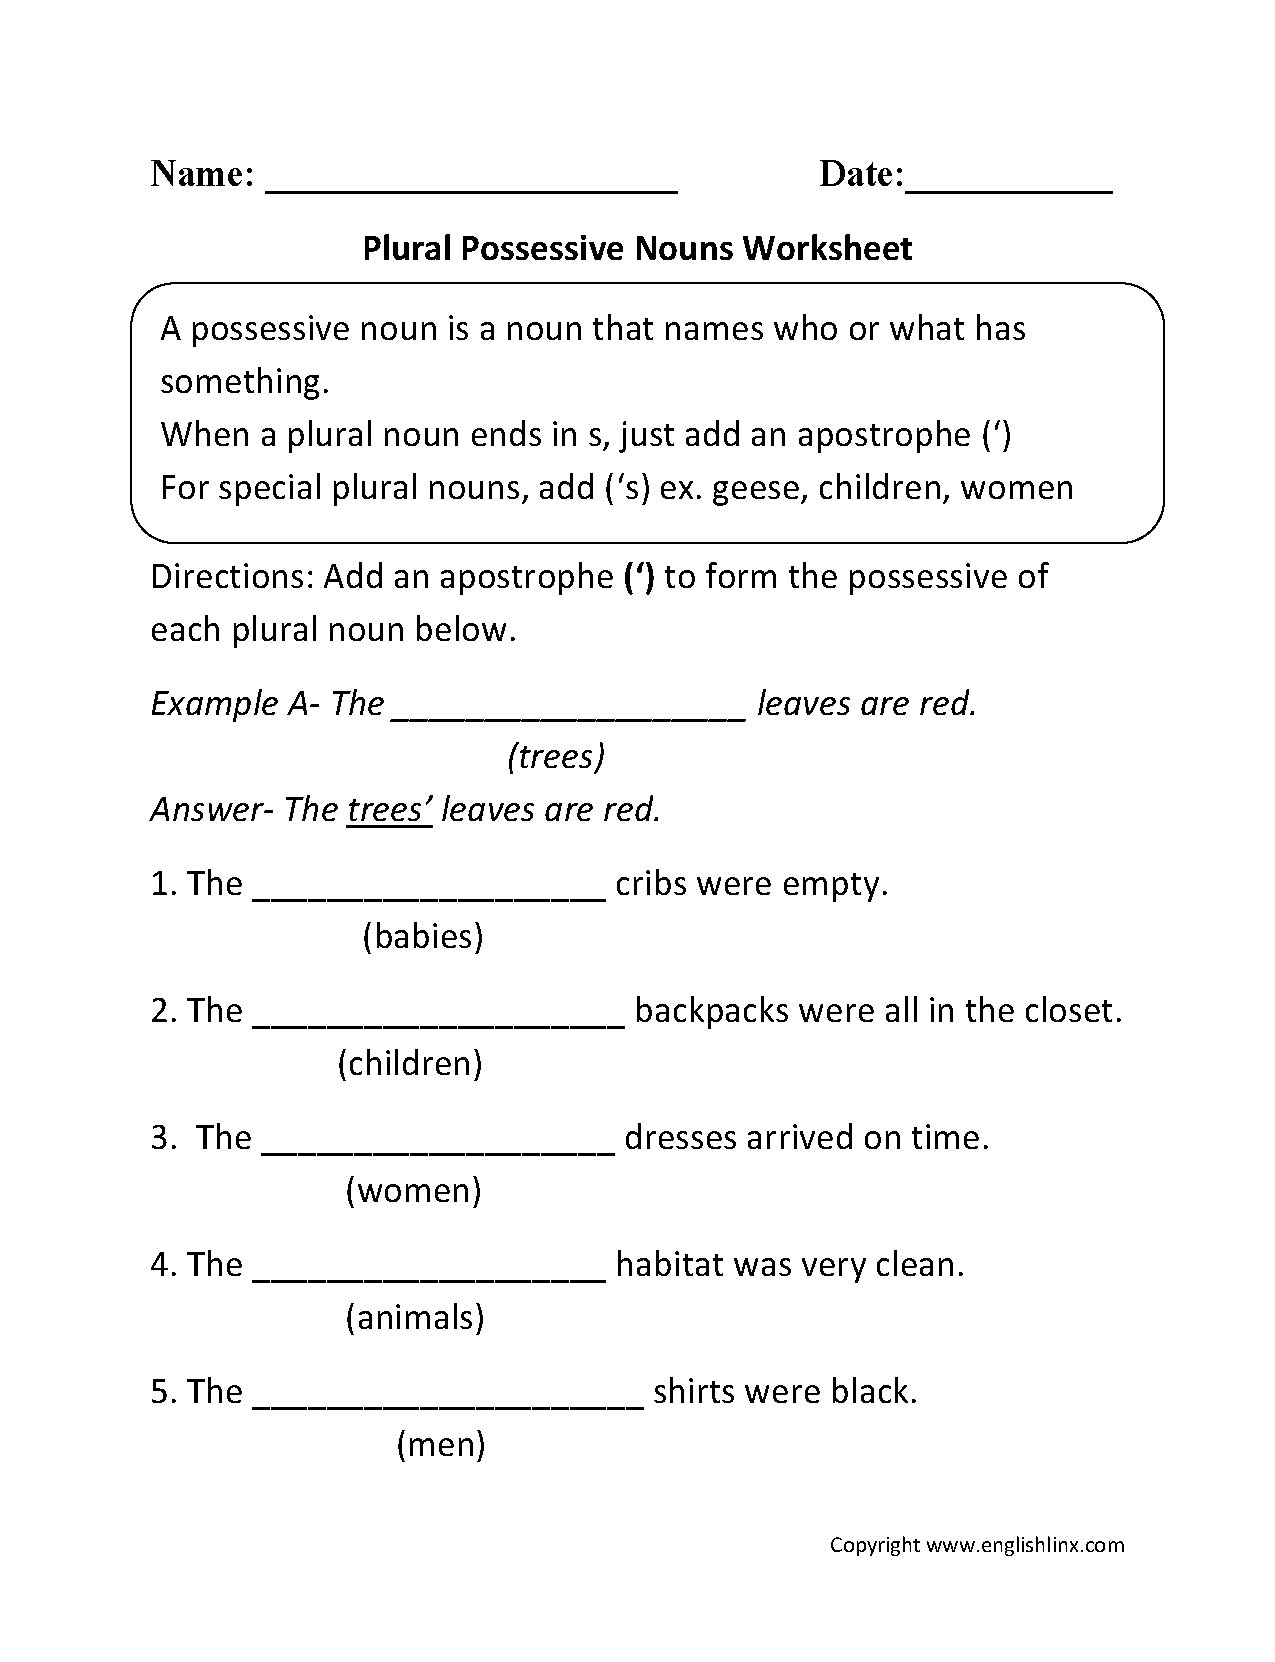 Aldiablosus  Seductive Nouns Worksheets  Possessive Nouns Worksheets With Engaging Possessive Nouns Worksheets With Astounding Table Manners Worksheet Also Parallelogram Properties Worksheet In Addition Telling Time To The Hour And Half Hour Worksheets And Kinetic Vs Potential Energy Worksheet As Well As Vocabulary Worksheet Template Additionally Adding And Subtracting Positive And Negative Integers Worksheet From Englishlinxcom With Aldiablosus  Engaging Nouns Worksheets  Possessive Nouns Worksheets With Astounding Possessive Nouns Worksheets And Seductive Table Manners Worksheet Also Parallelogram Properties Worksheet In Addition Telling Time To The Hour And Half Hour Worksheets From Englishlinxcom